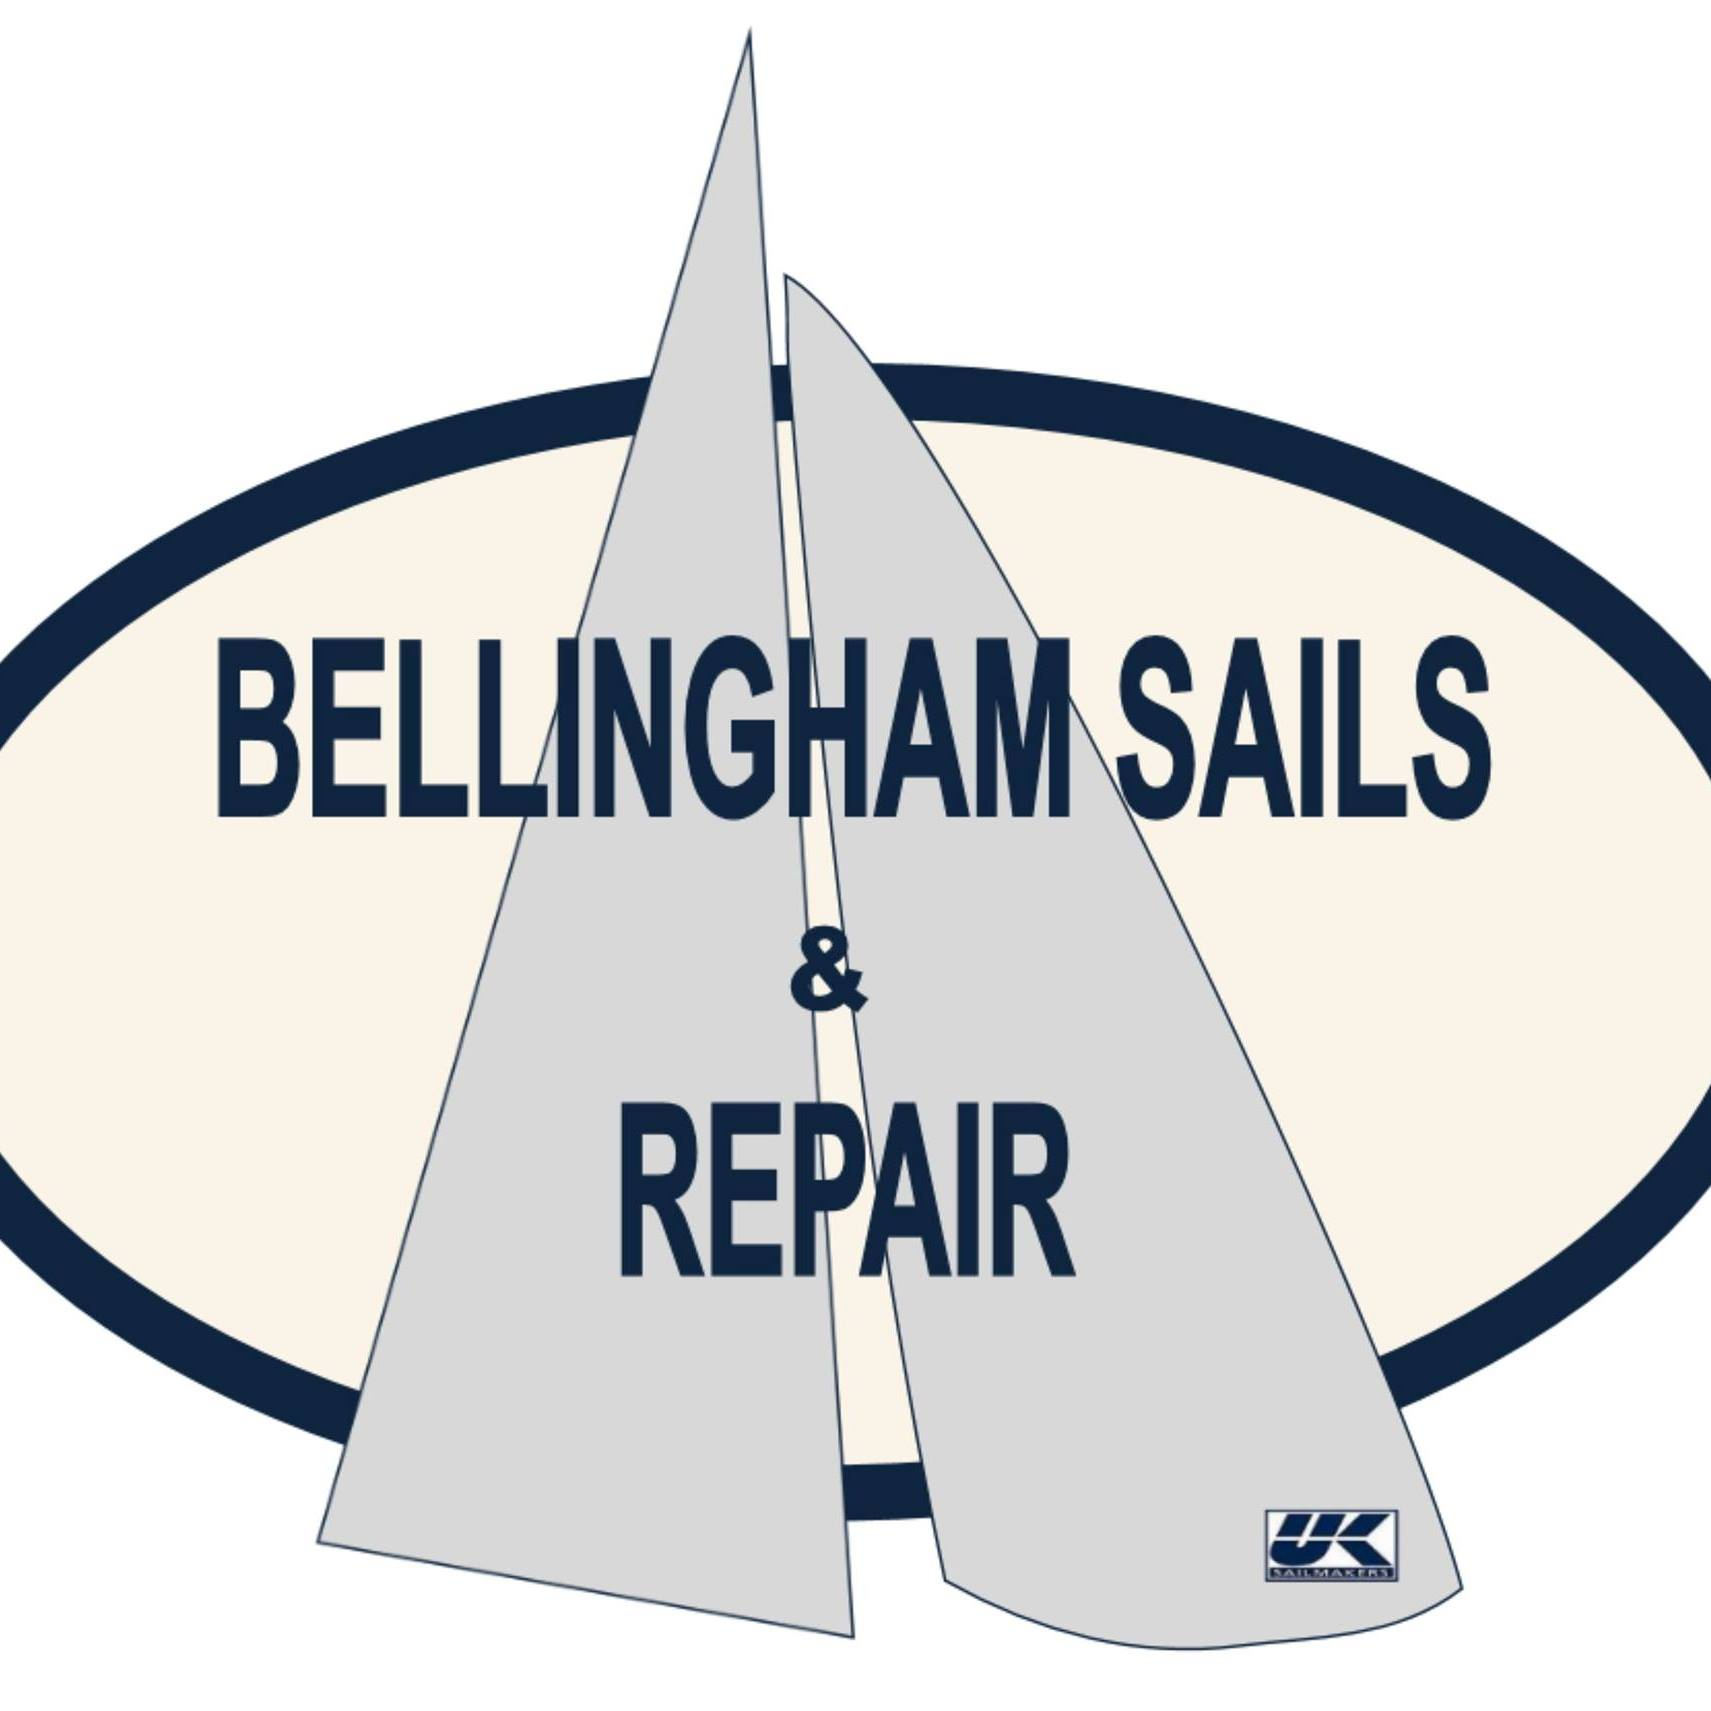 Bellingham Sails & Repair